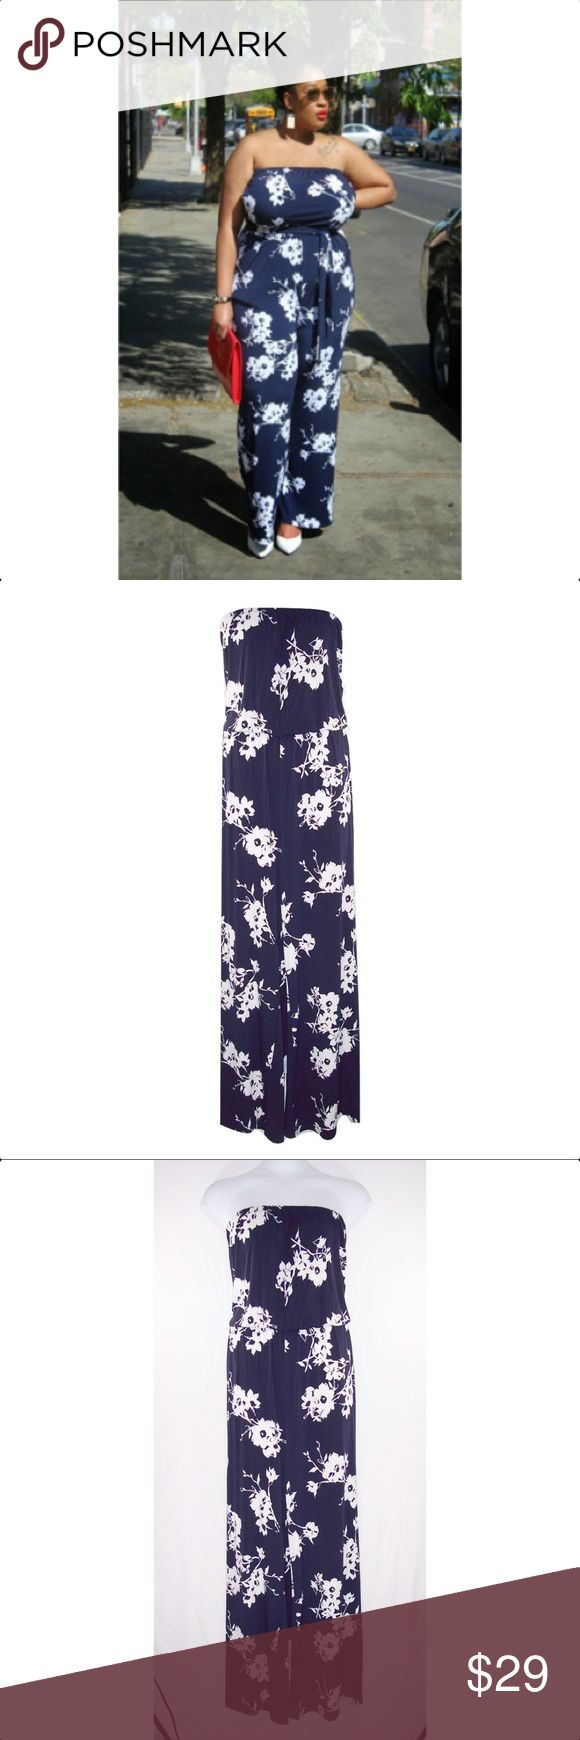 LANE BRYANT 18/20 Floral Romper Jumpsuit-NEW Navy & White in color, is strapless with elastic at top, elastic waist, floral print, rounded pockets at sides, flared legs, soft silky fabric is 95% polyester, 5% spandex and machine washable. **IT HAS BELT LOOPS BUT NO BELT COMES WITH IT.** Brand label has been cut through to prevent retail store returns. NWOT Comes from a smoke free home. Measurements: elastic top-38 to 52 (stretched), bust-44 to 54 (stretched), elastic waist-38 to 50…